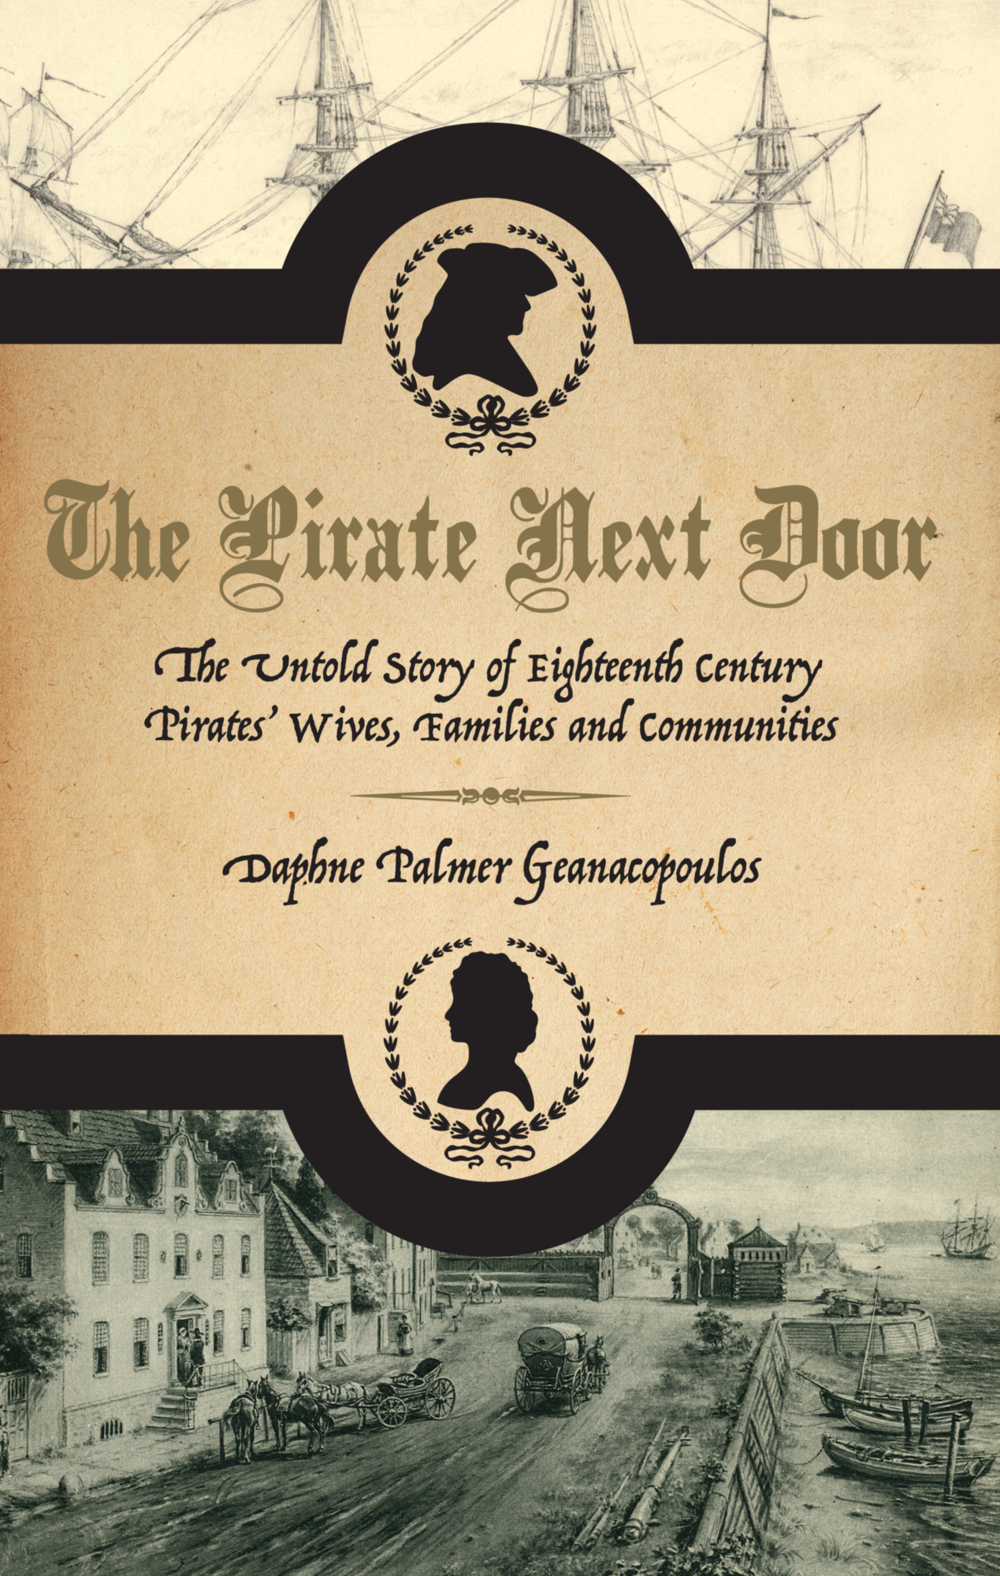 Copy of  The Pirate Next Door: The Untold Story of Eighteenth Century Pirates' Wives, Families and Communities